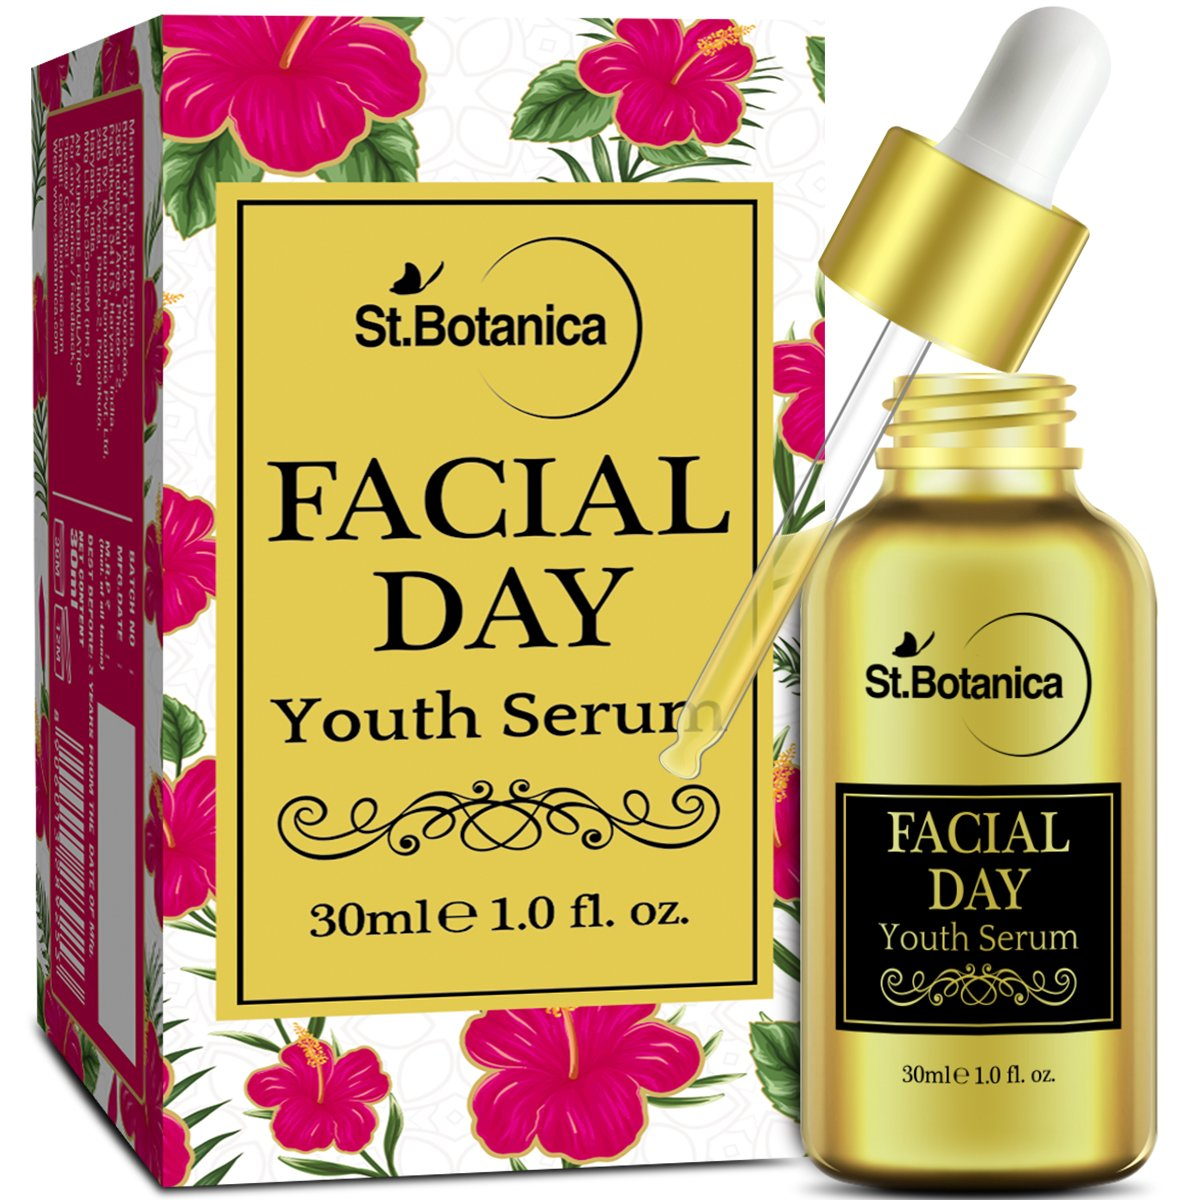 StBotanica Facial Day Youth Serum - 30ml - with Natural SPF & Vitamin C for Skin Brightening, Fairness product image